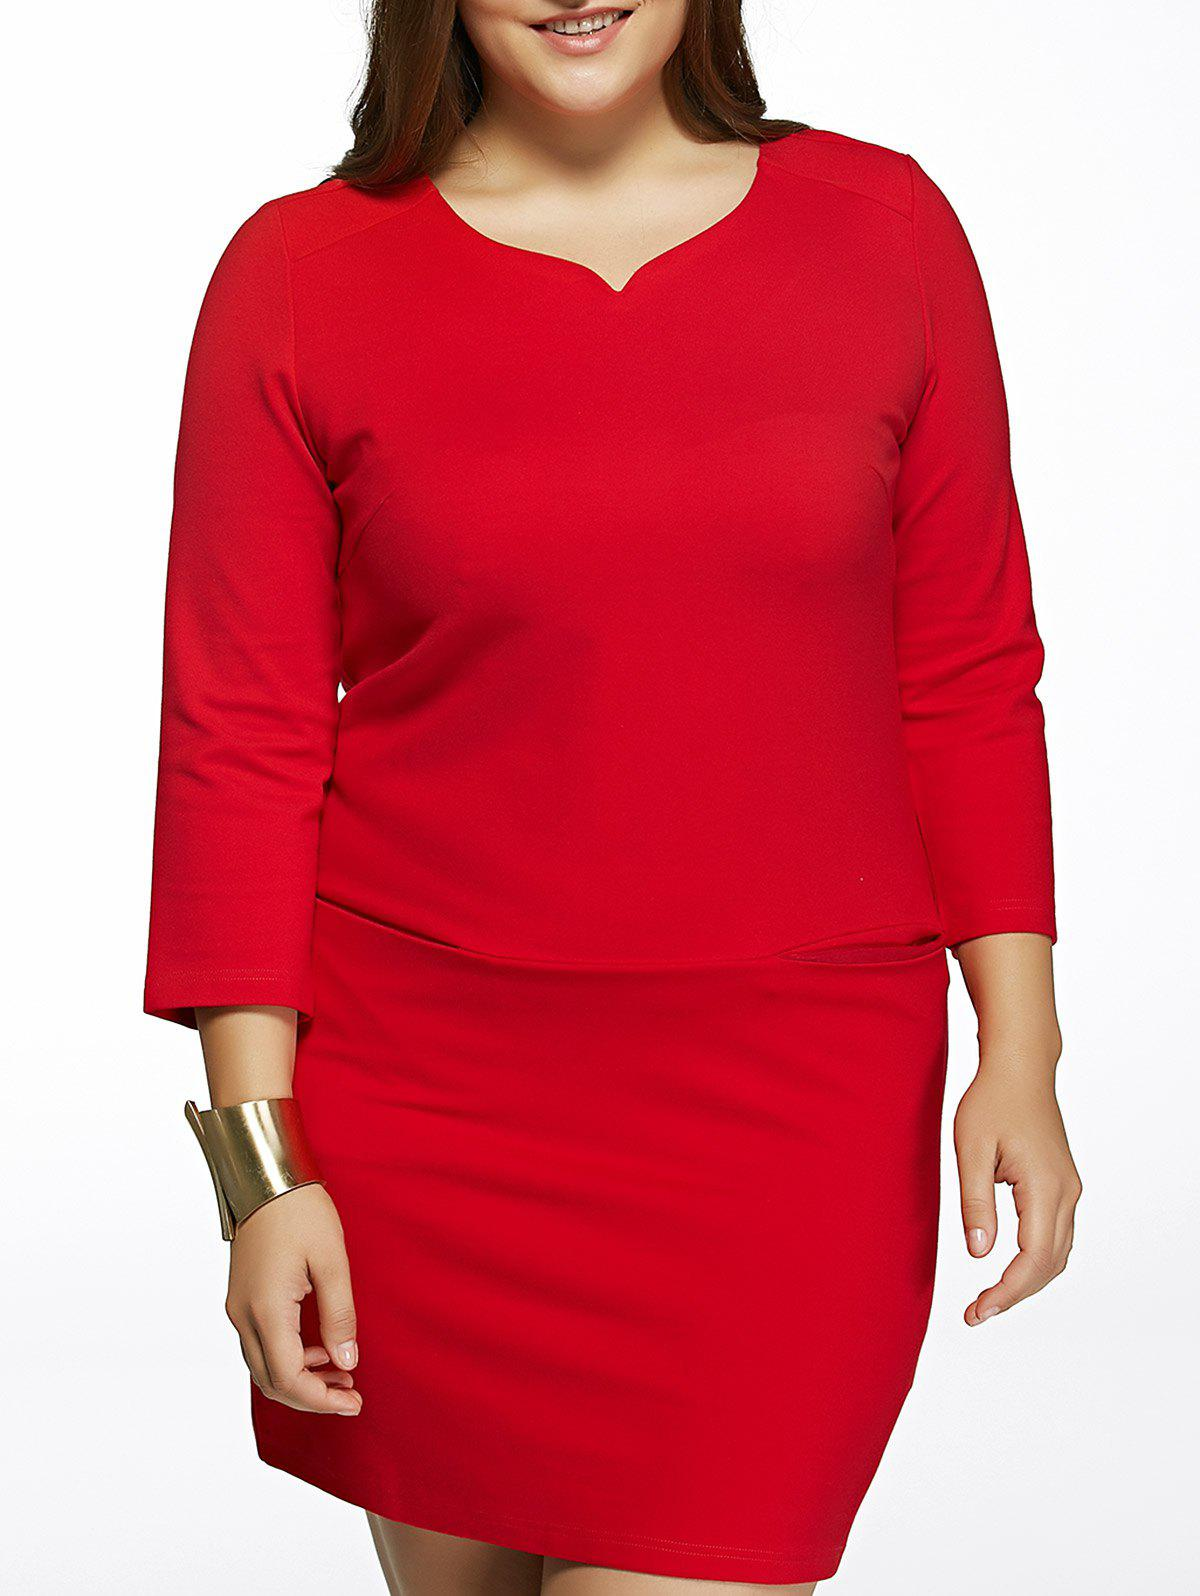 Oversized Elegant Vertical Pocket Pure Color Dress - RED 3XL